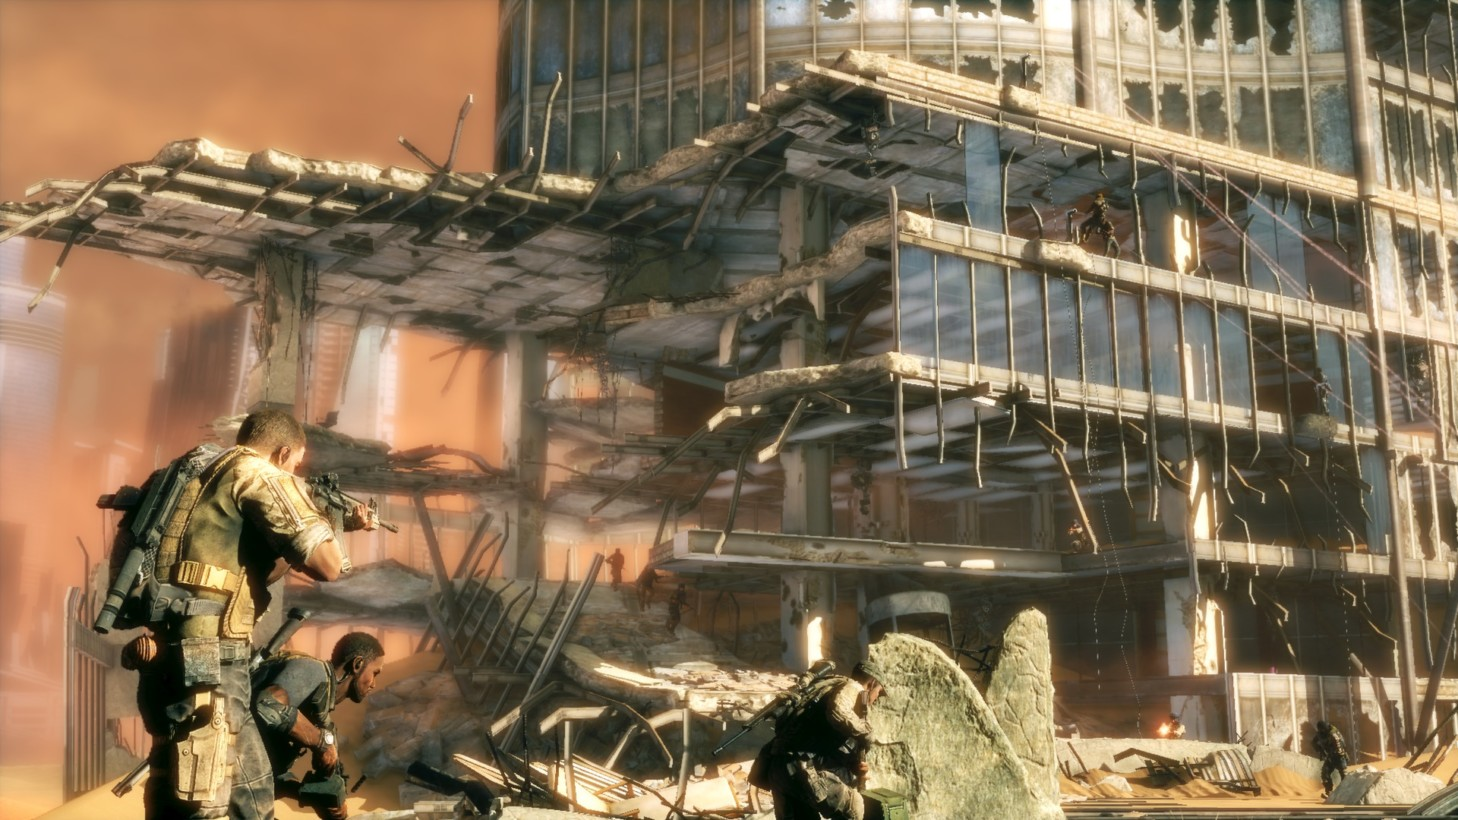 Spec Ops: The Line is a 2012 shooter that's more than skin deep